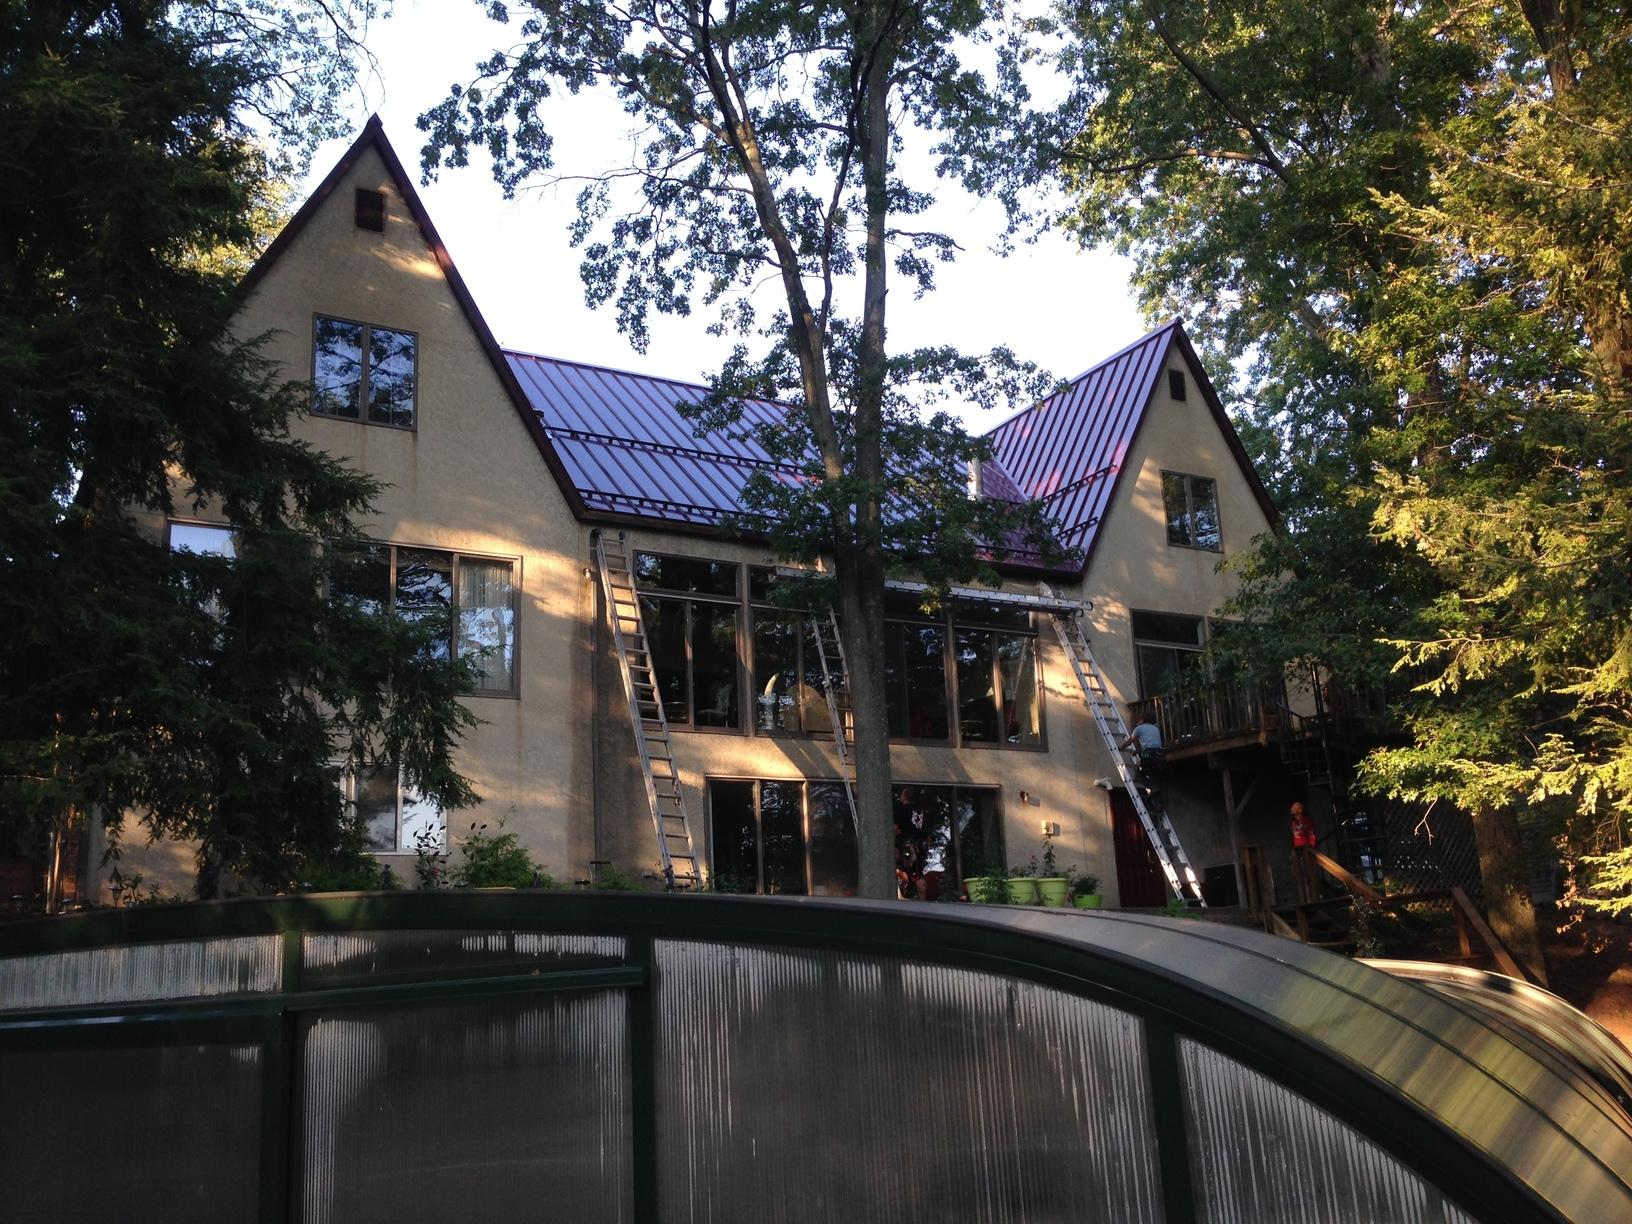 Burgundy Metal Roof Over Creme Siding